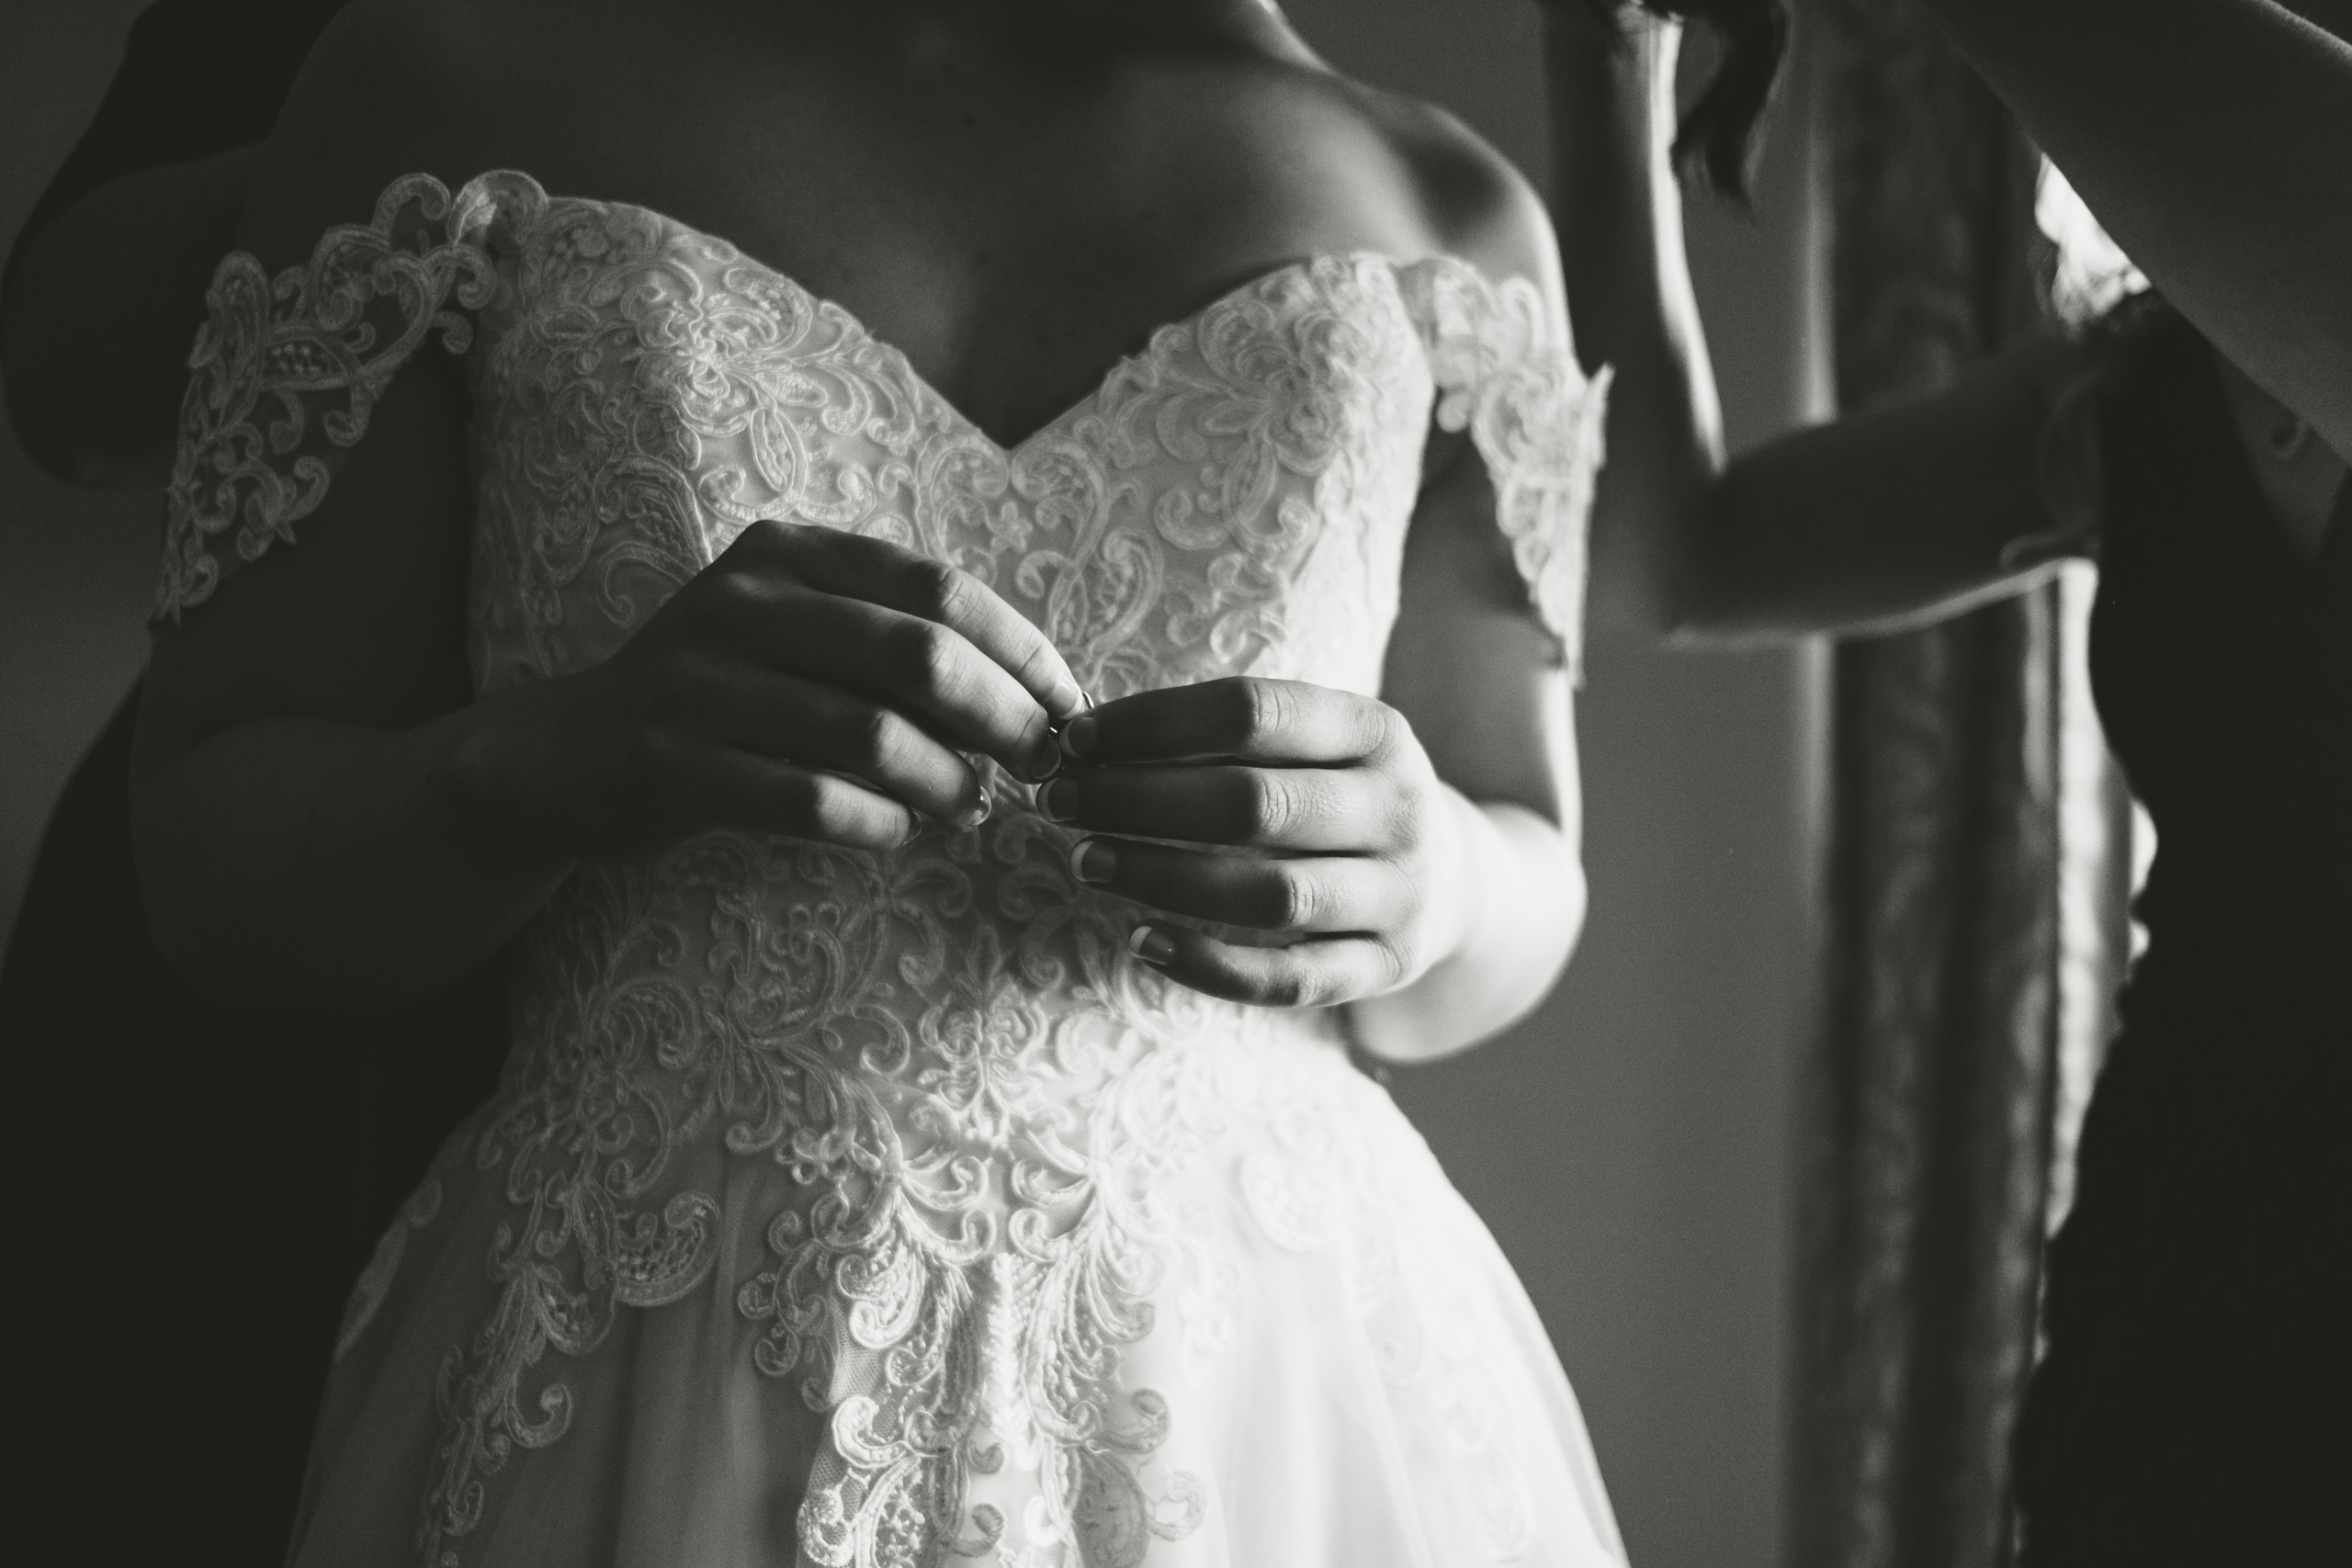 Detail of bride holding ring and getting ready at the Chateau Laurier before her wedding ceremony at the Metropolitain Brasserie. Photo taken by Ottawa Wedding photographer Melanie Mathieu.